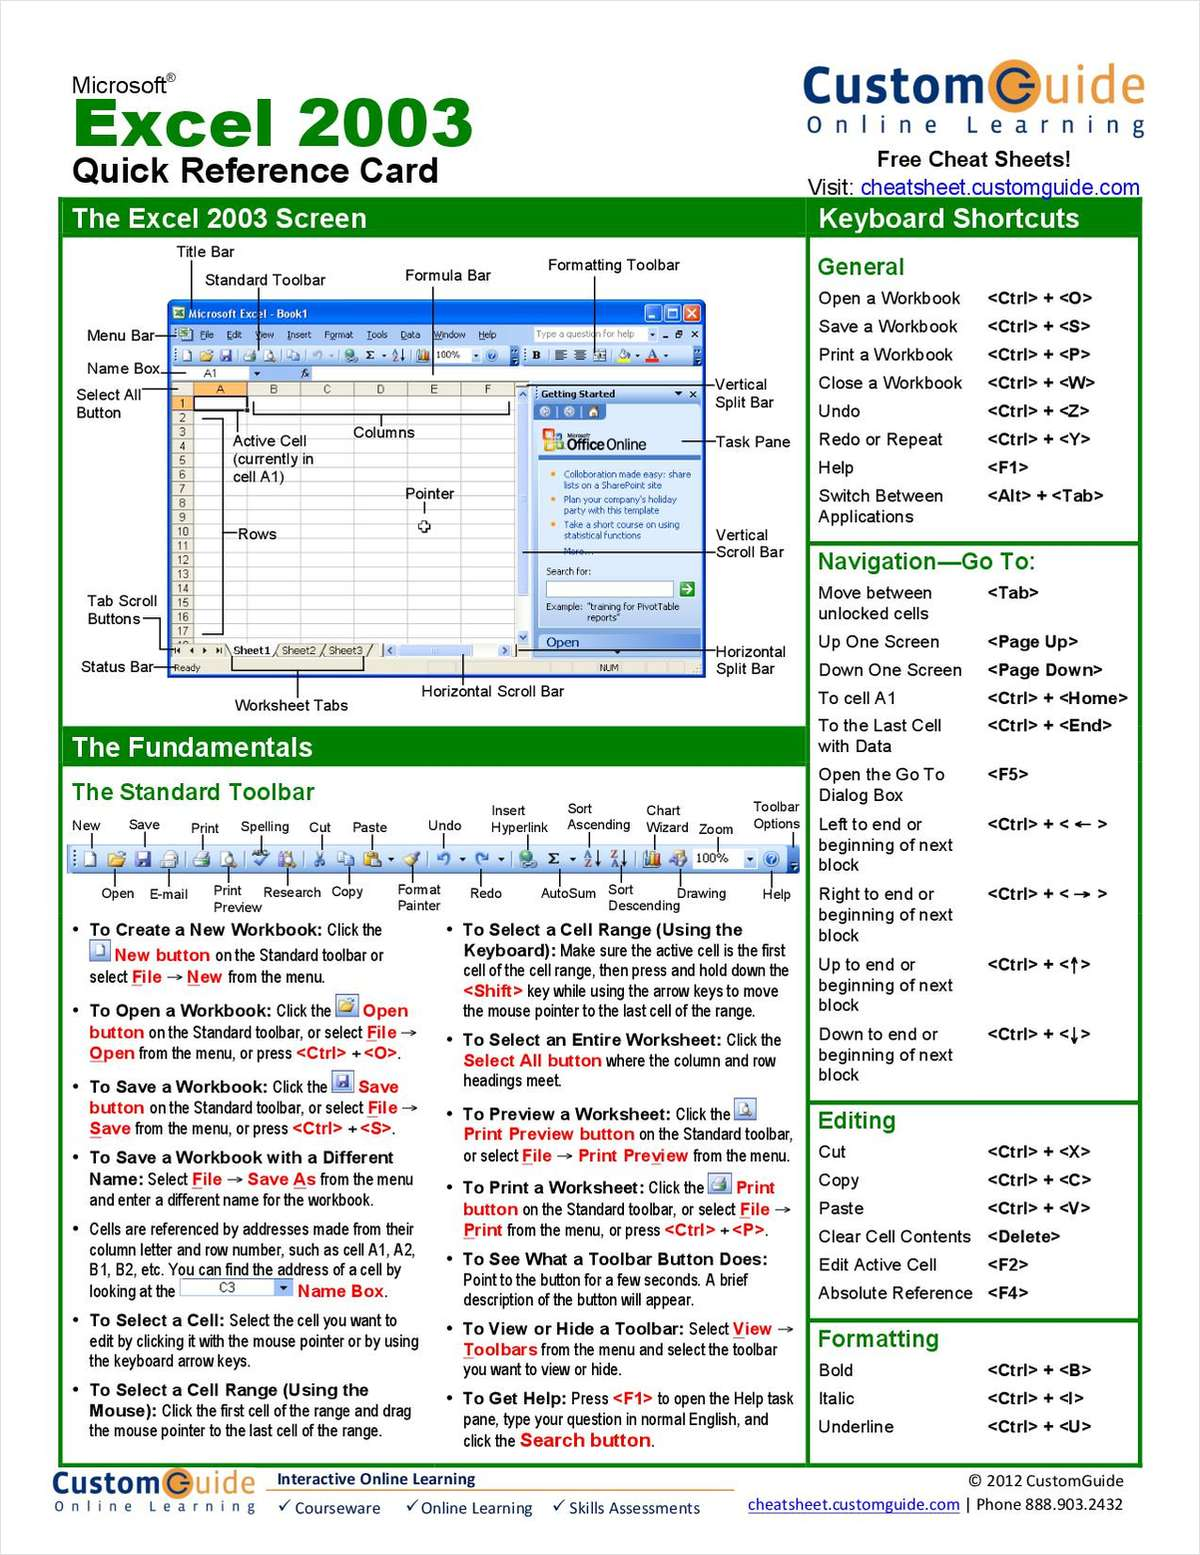 Microsoft Excel Free Quick Reference Card Free Tips And Tricks Guide